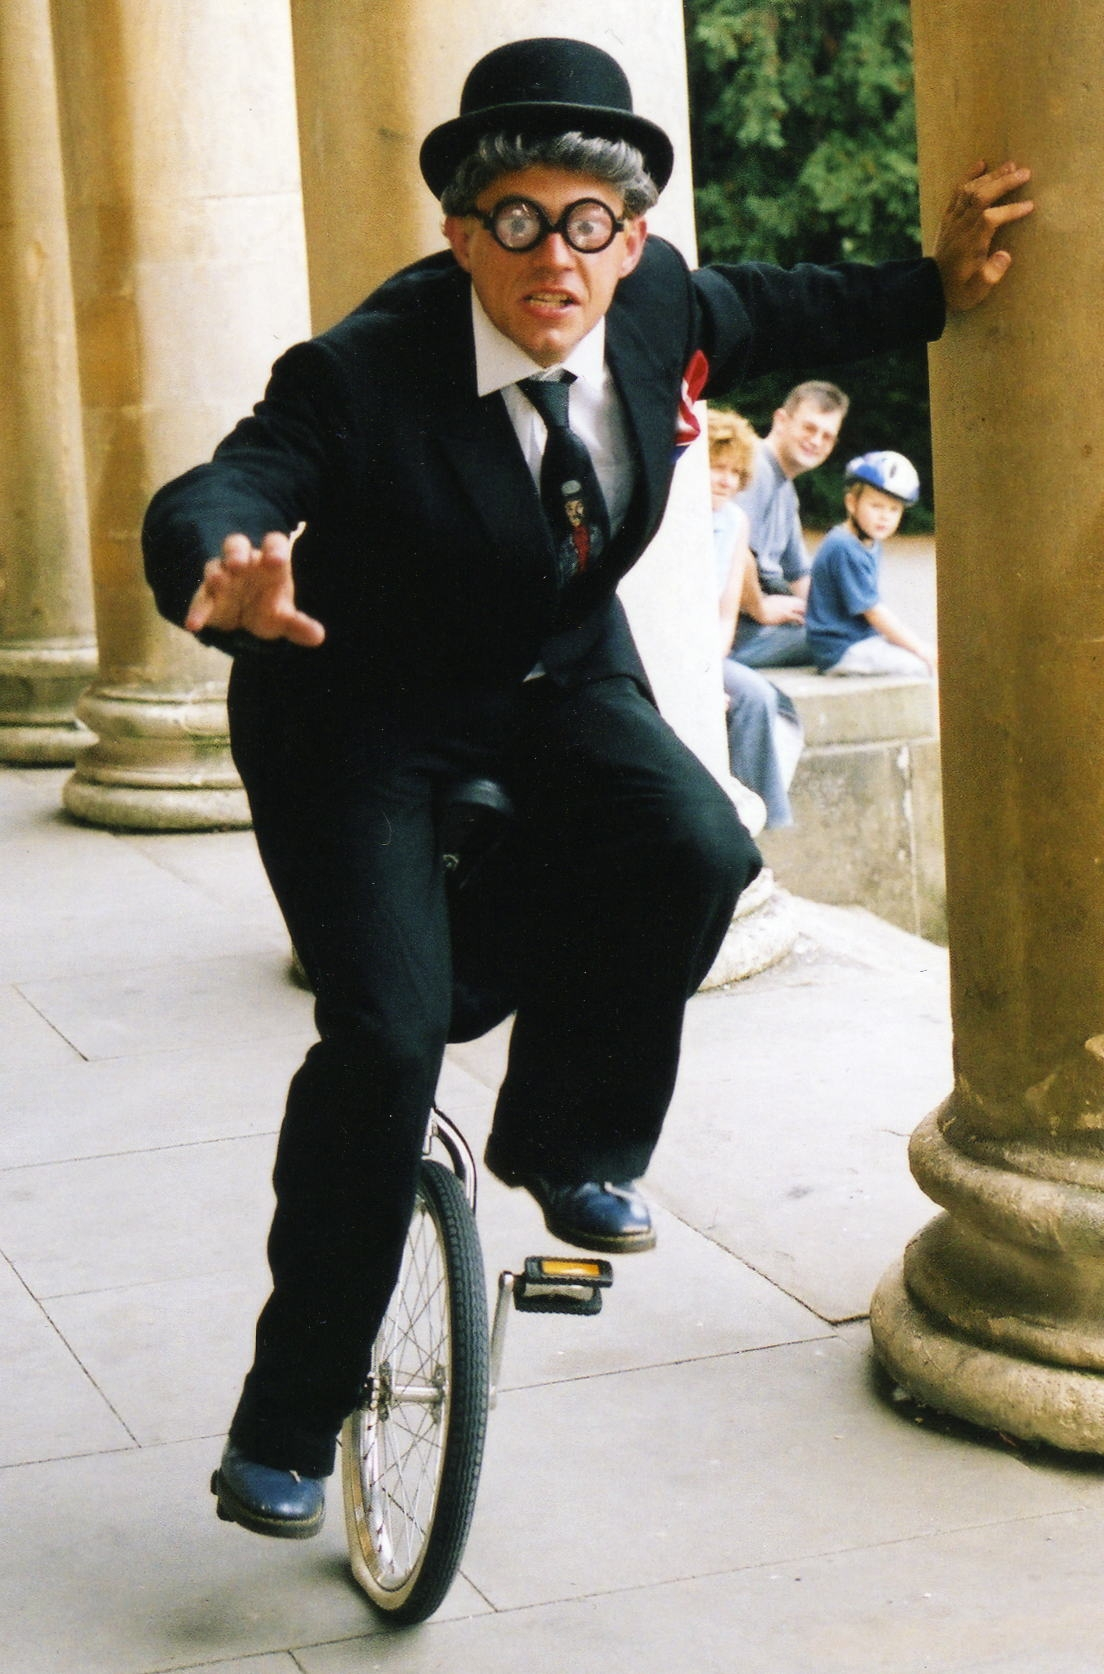 Thomas Trilby Unicyclist Juggler